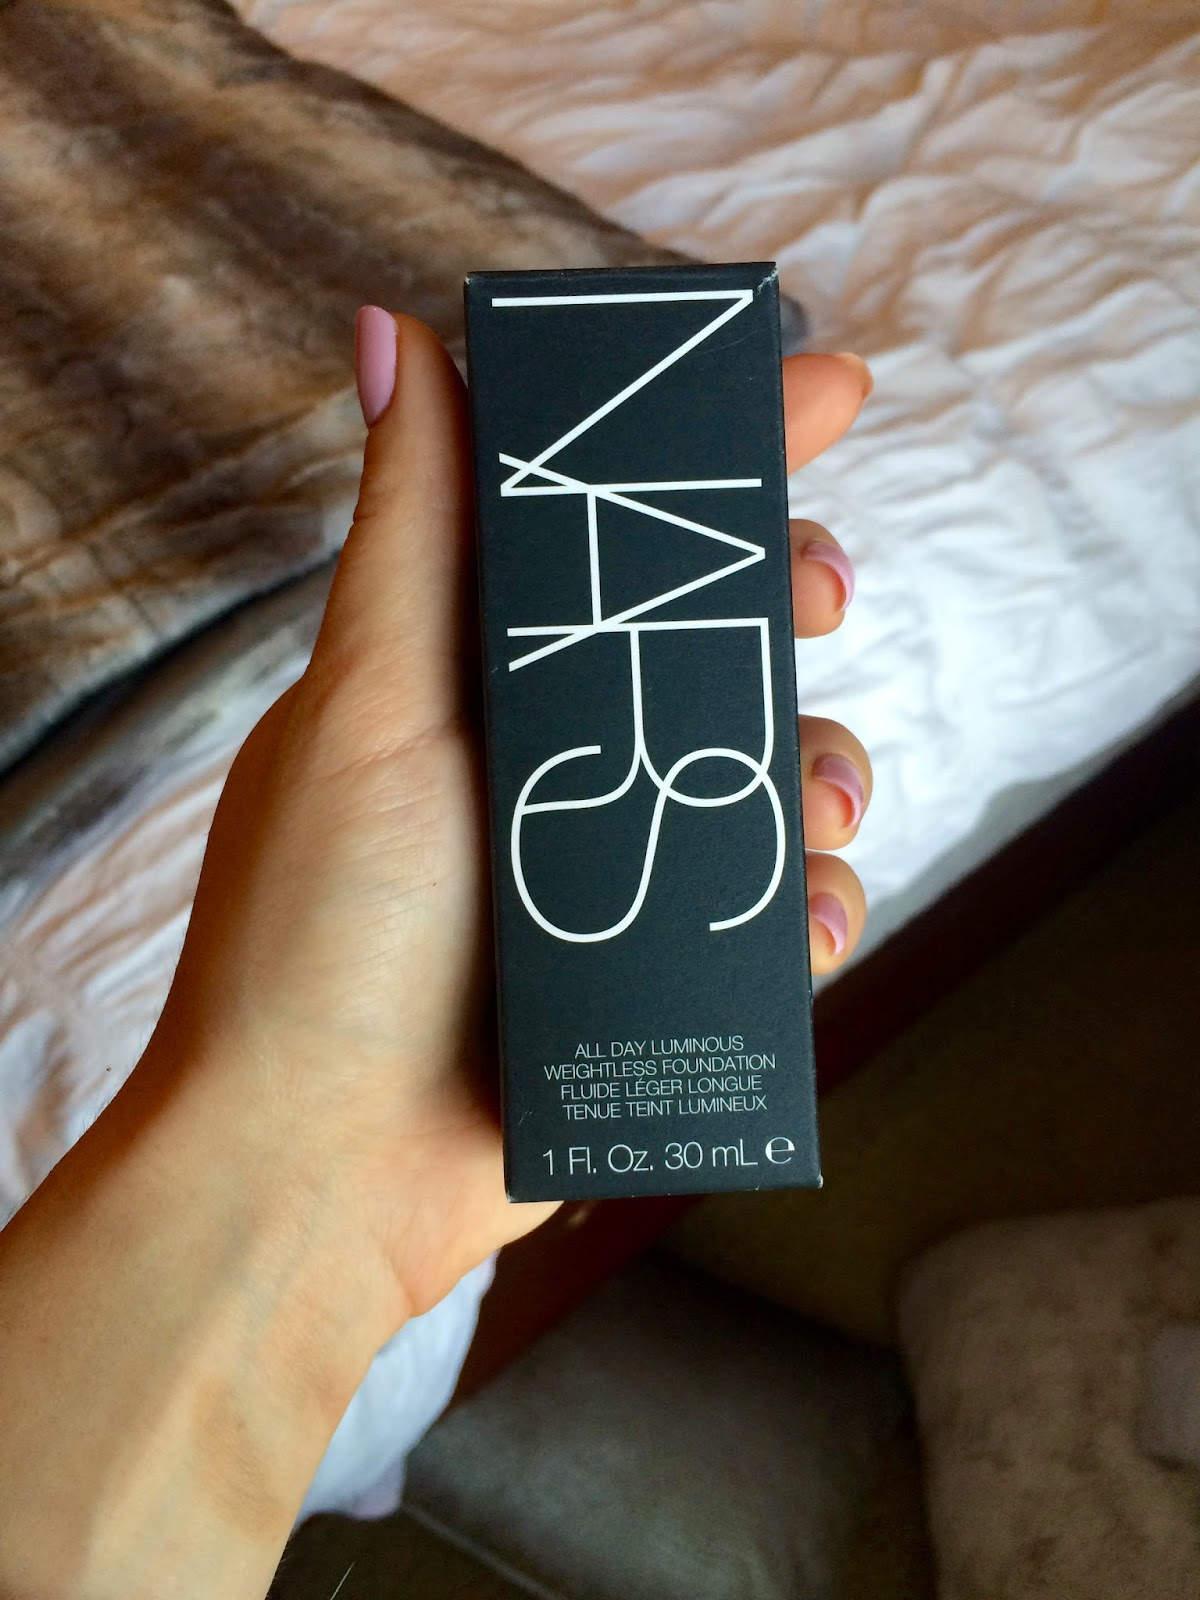 Nars Foundation Punjab